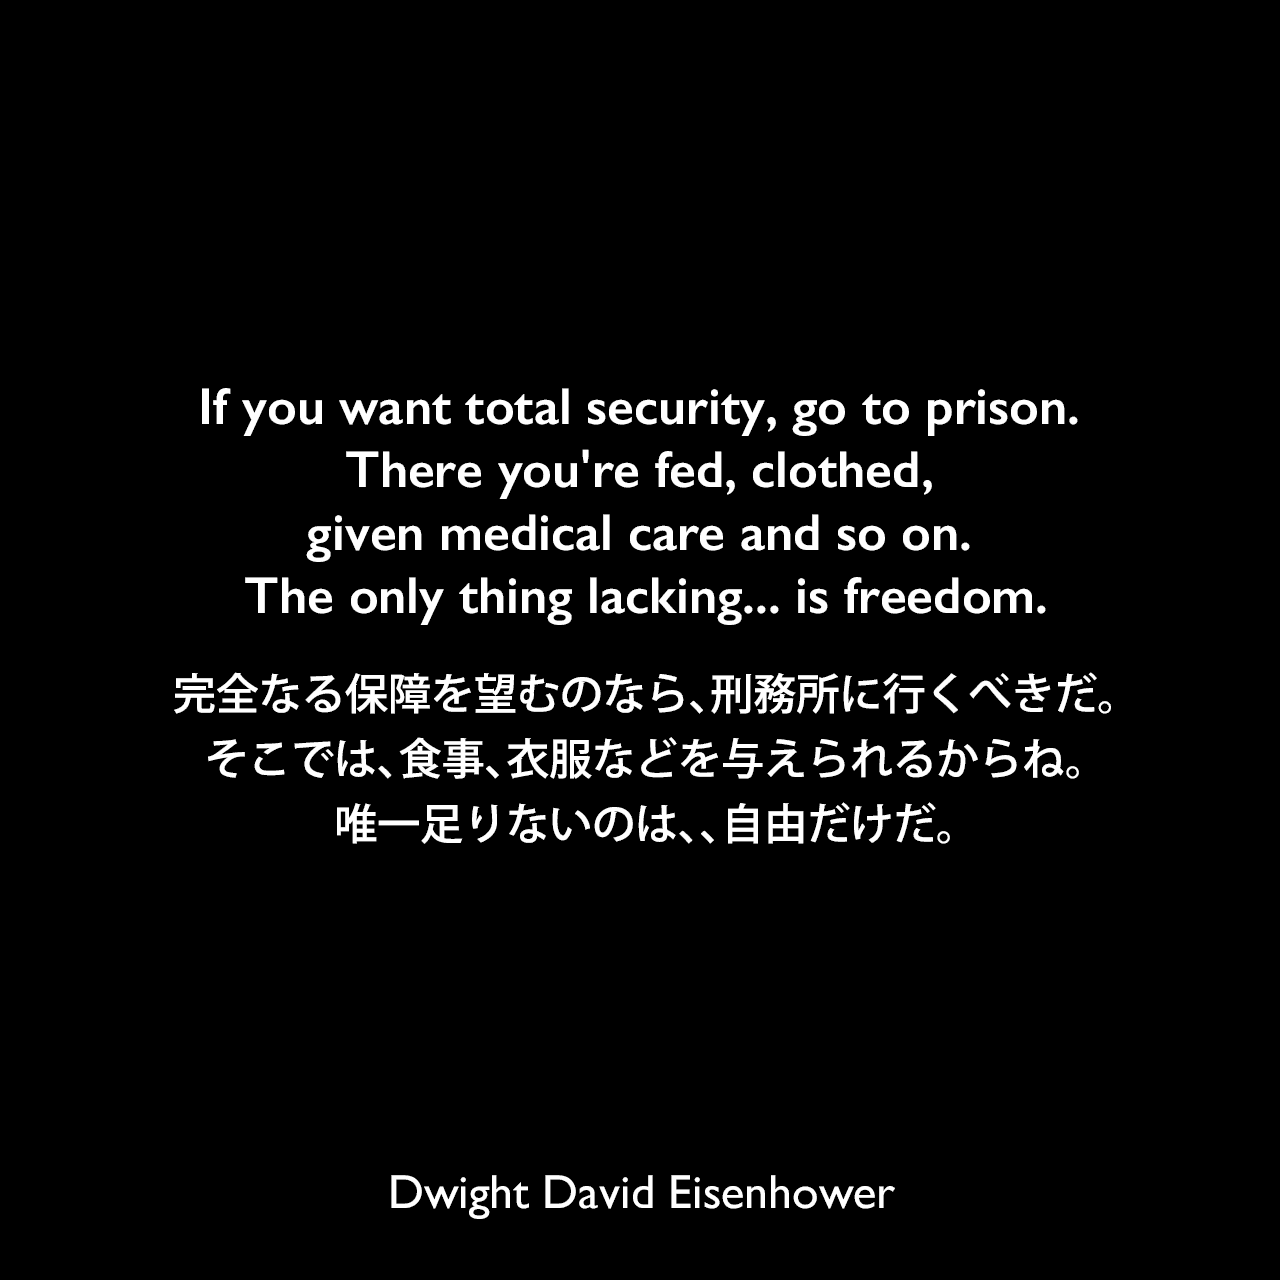 If you want total security, go to prison. There you're fed, clothed, given medical care and so on. The only thing lacking... is freedom.完全なる保障を望むのなら、刑務所に行くべきだ。そこでは、食事、衣服などを与えられるからね。唯一足りないのは、、自由だけだ。Dwight David Eisenhower